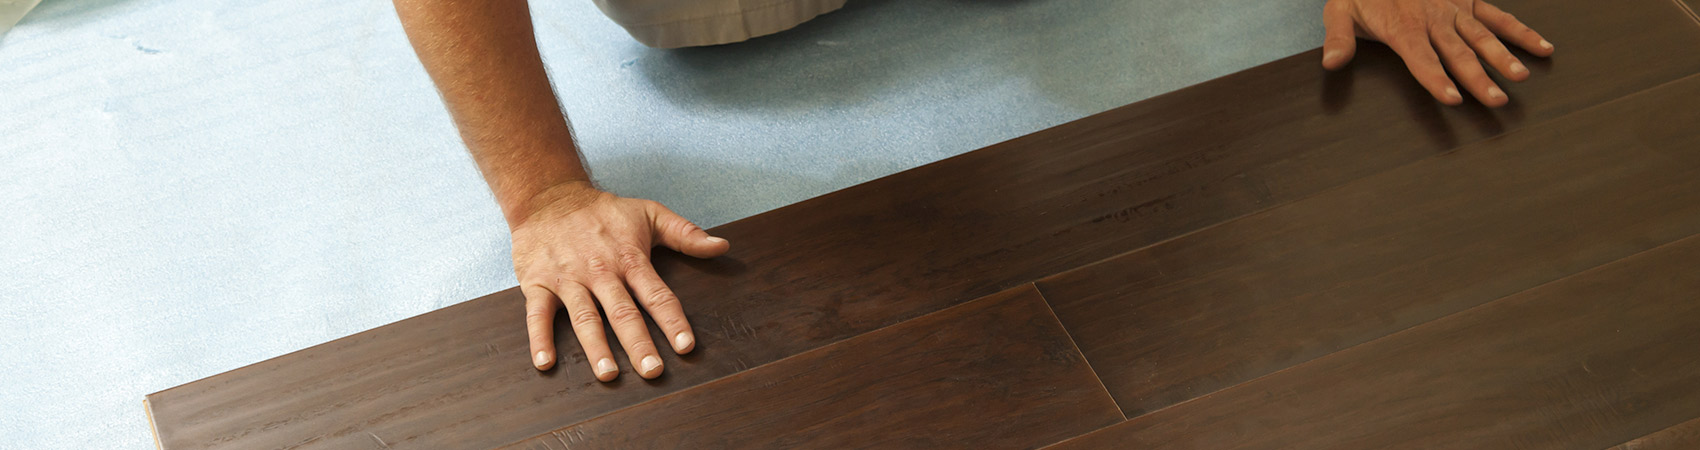 South Carolina Flooring